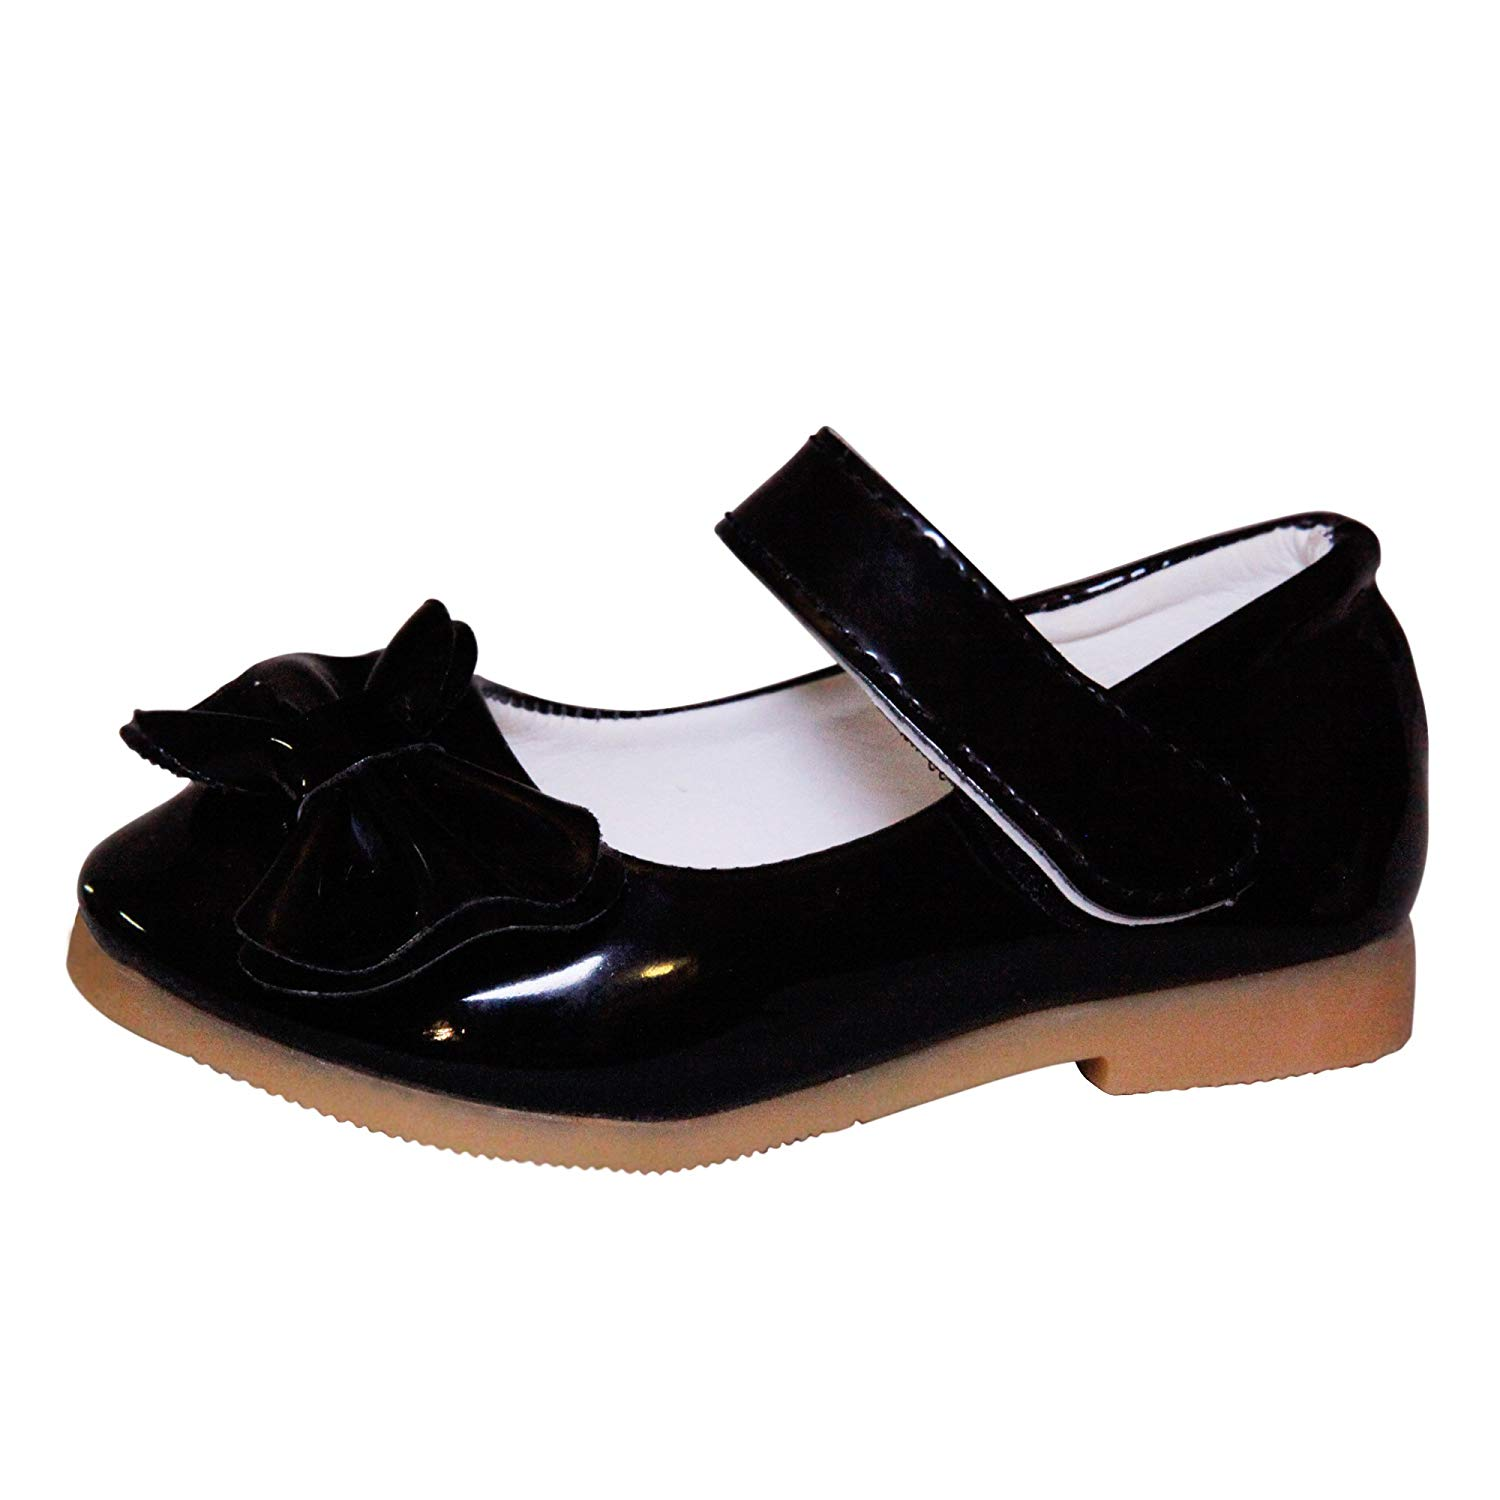 8749c1032d645 Get Quotations · CONDA Kids Girls Toddler Shoes - Little Kids Patent Leather  Black Bow Mary Janes